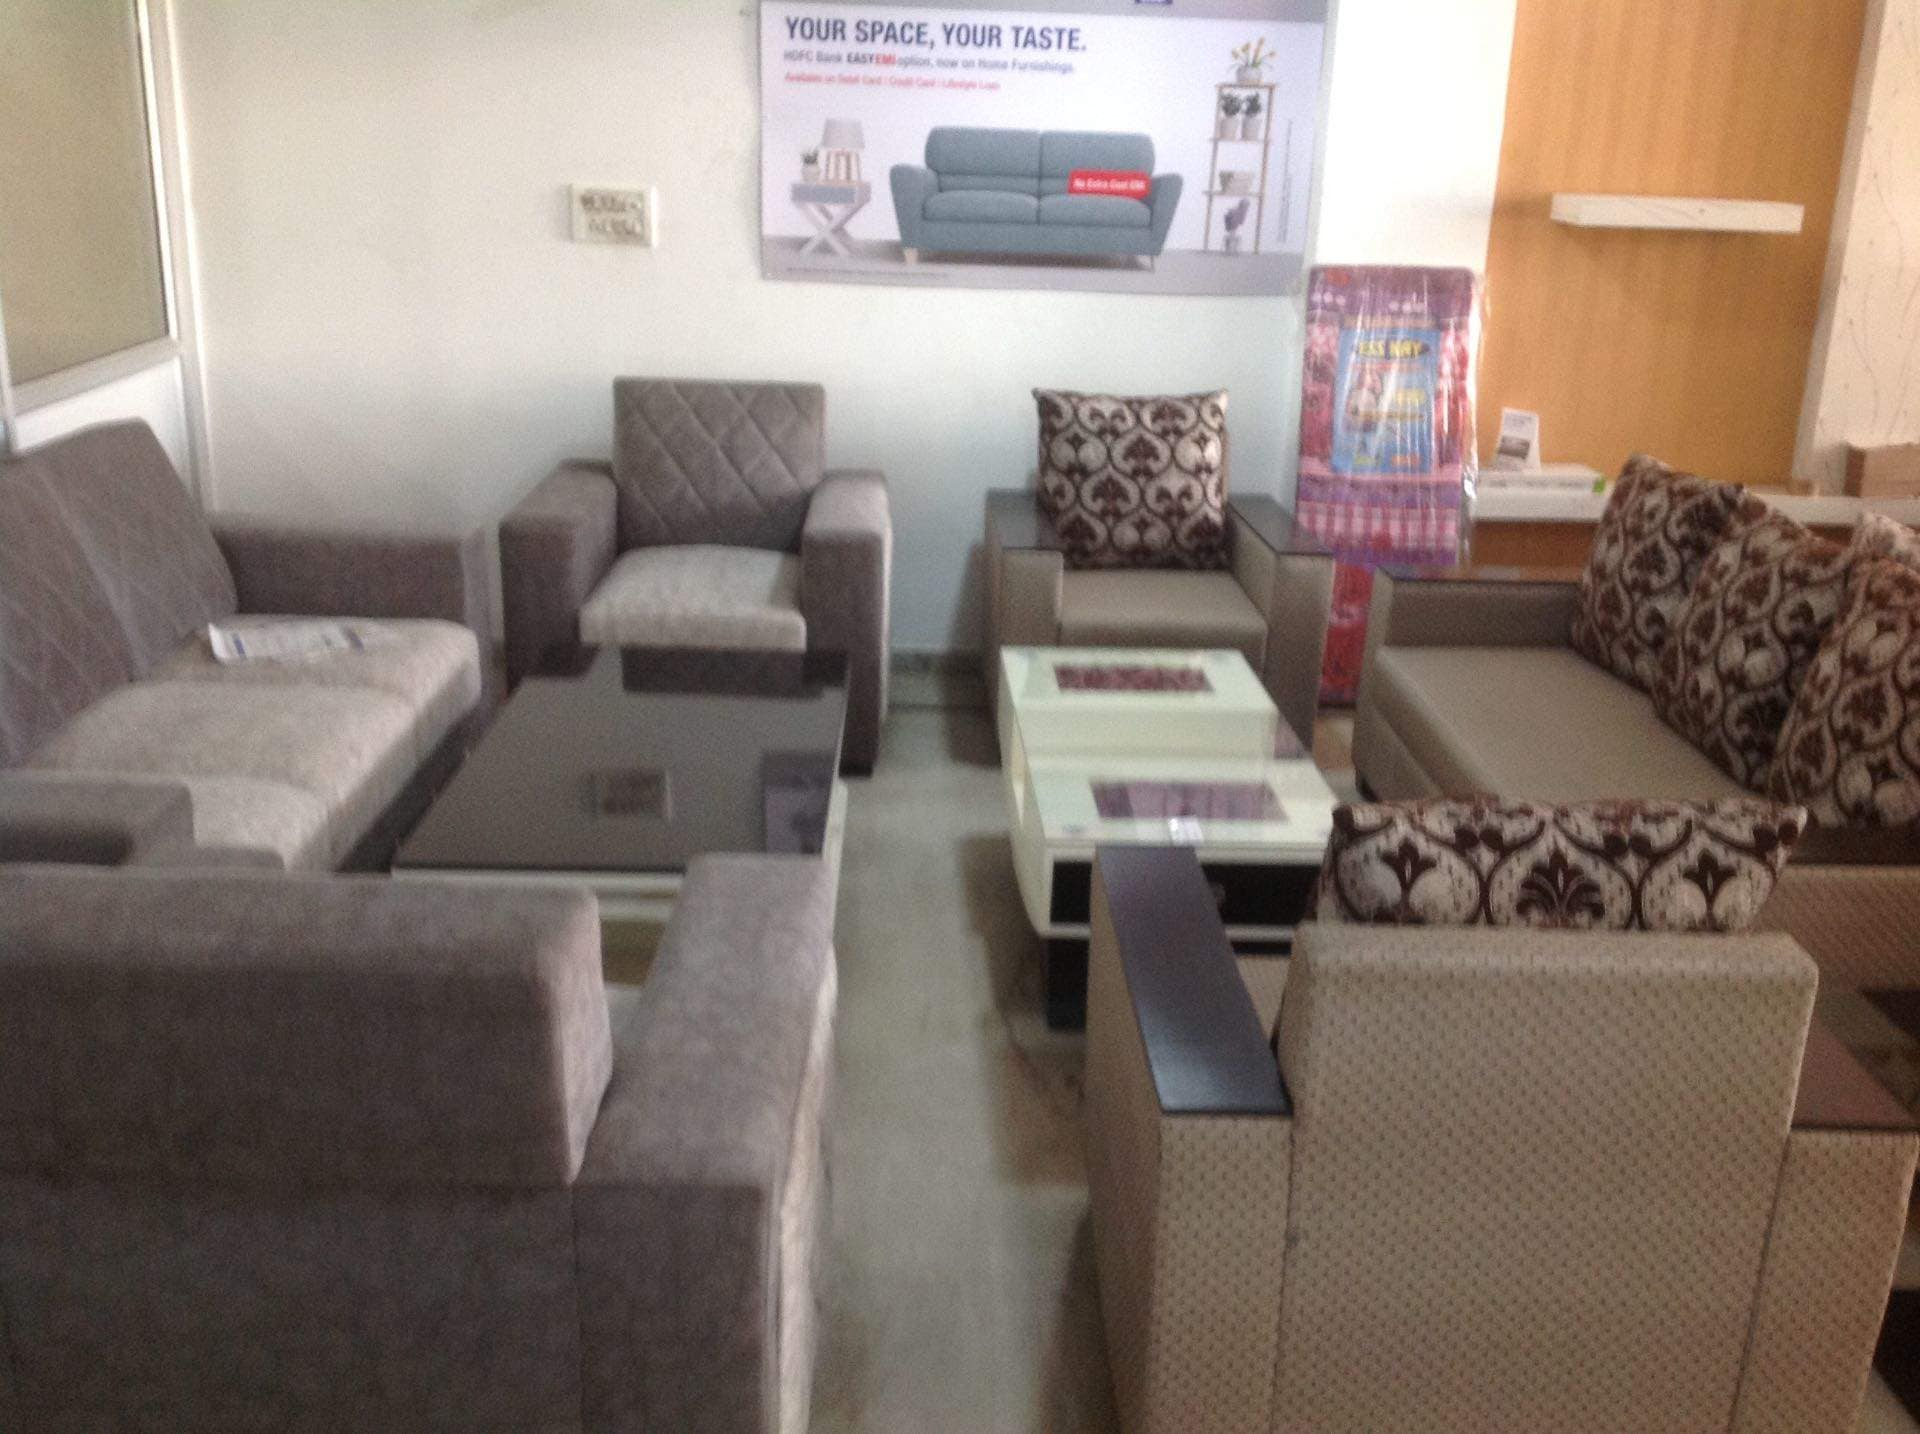 Top 30 Leather Sofas in Jaipur - Best Italian Leather Sofa ...